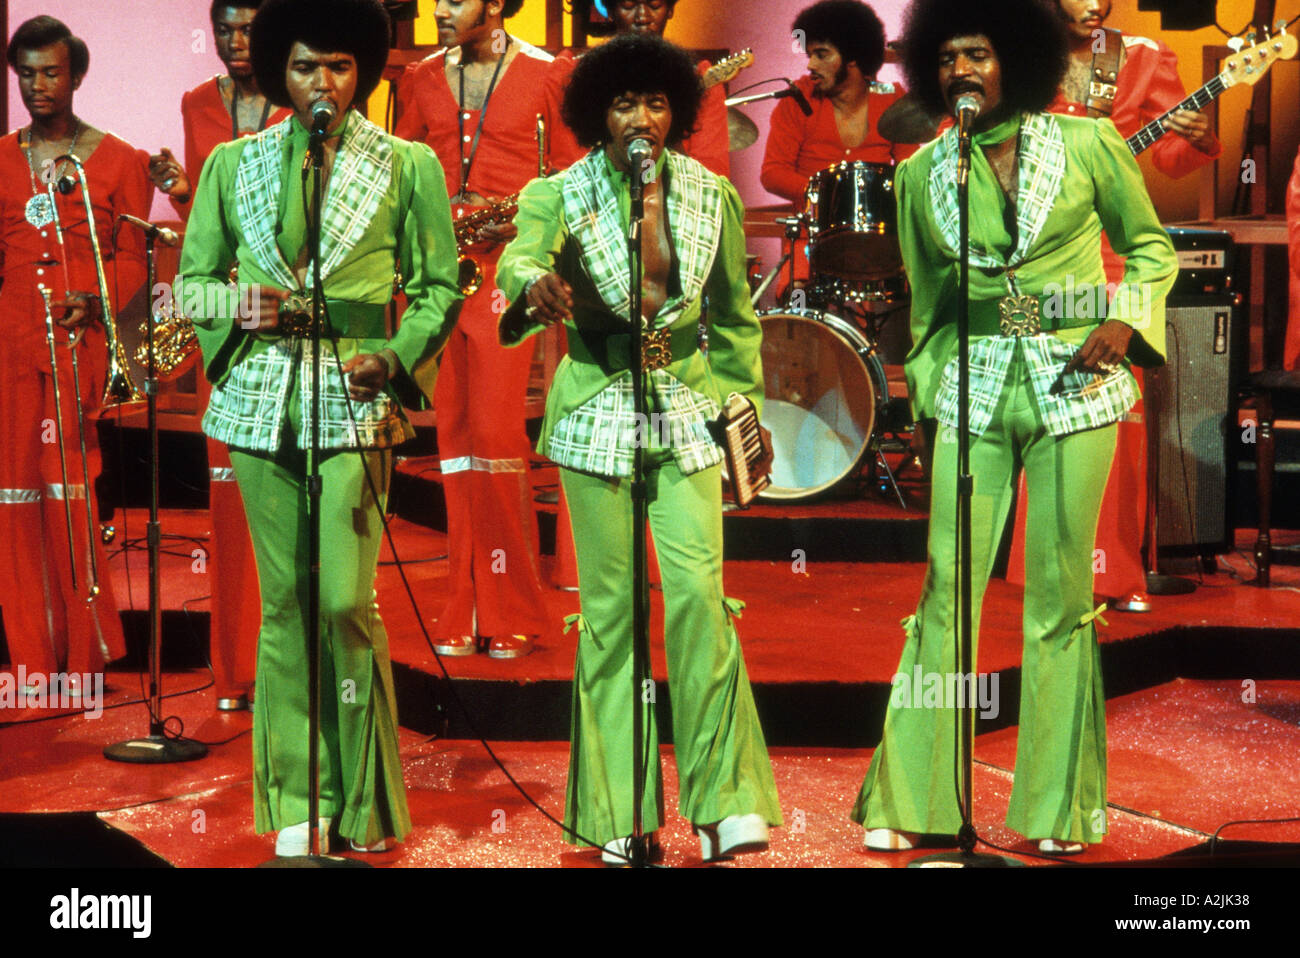 CHI LITES US soul group in the 1970s - Stock Image